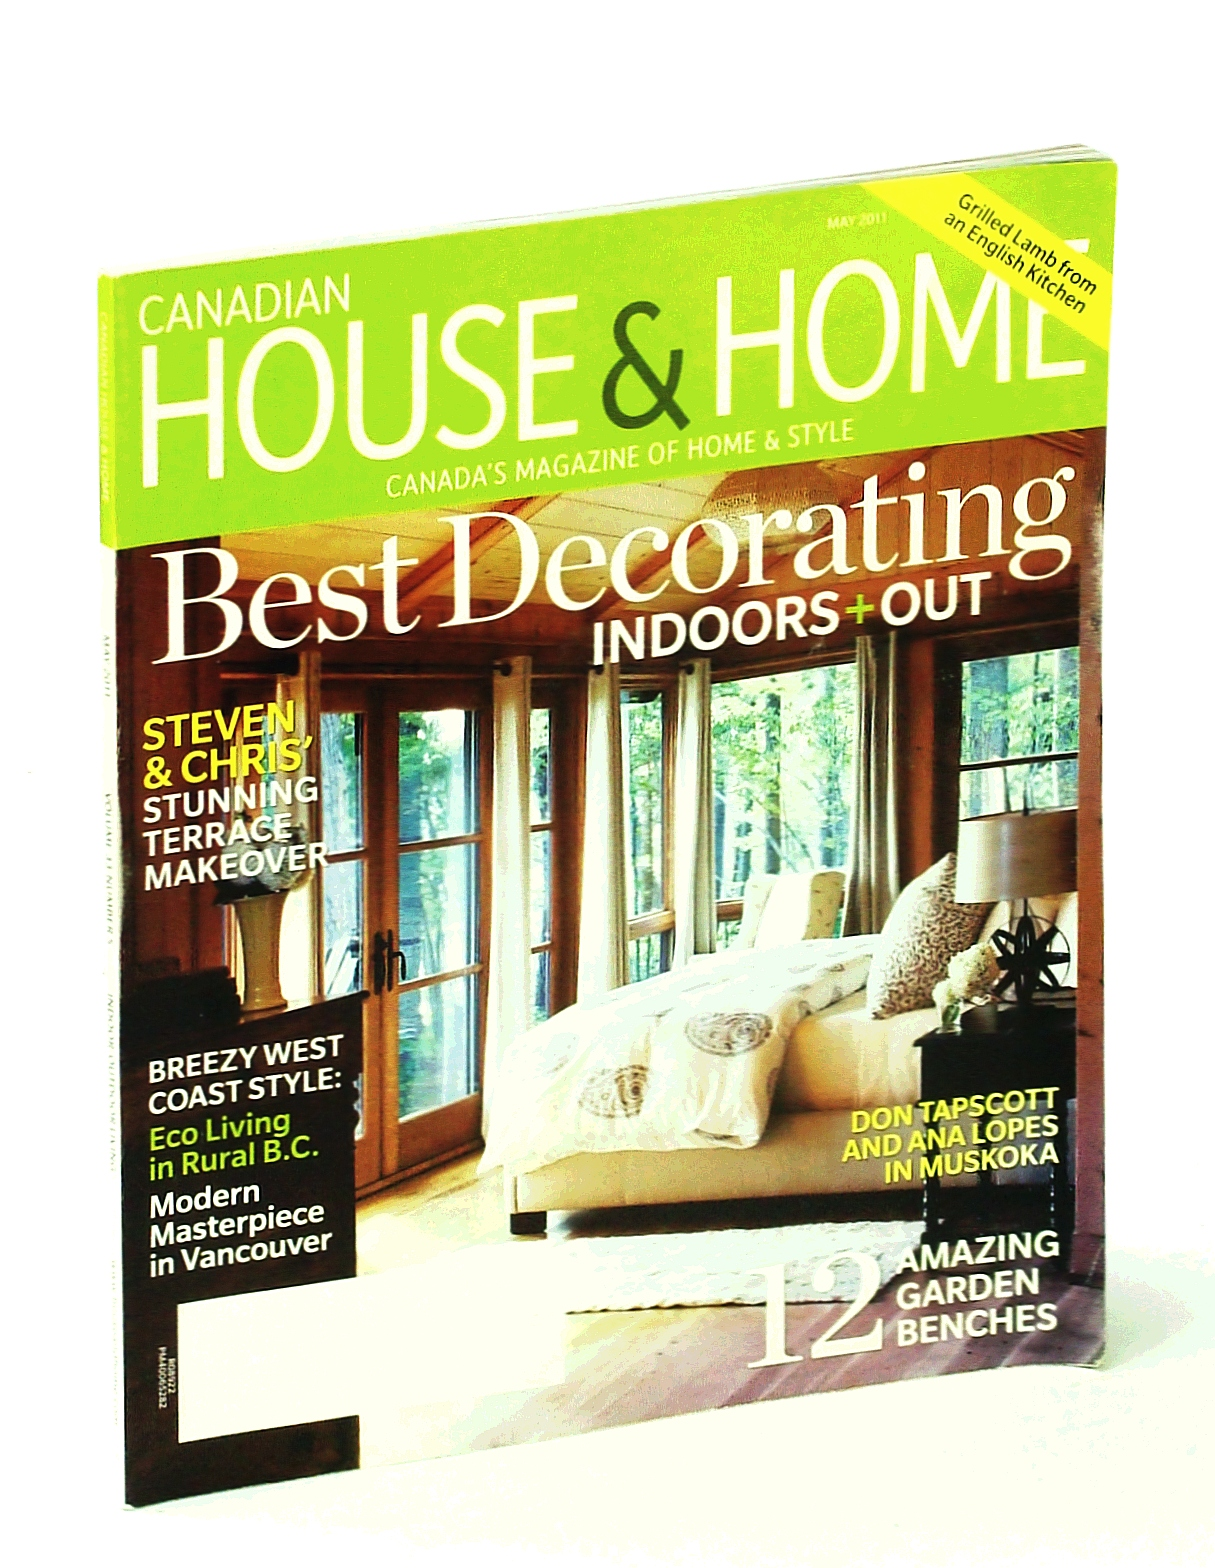 Image for Canadian House & Home - Canada's Magazine of Home & Style, May 2011: Best Decorating Indoors and Out